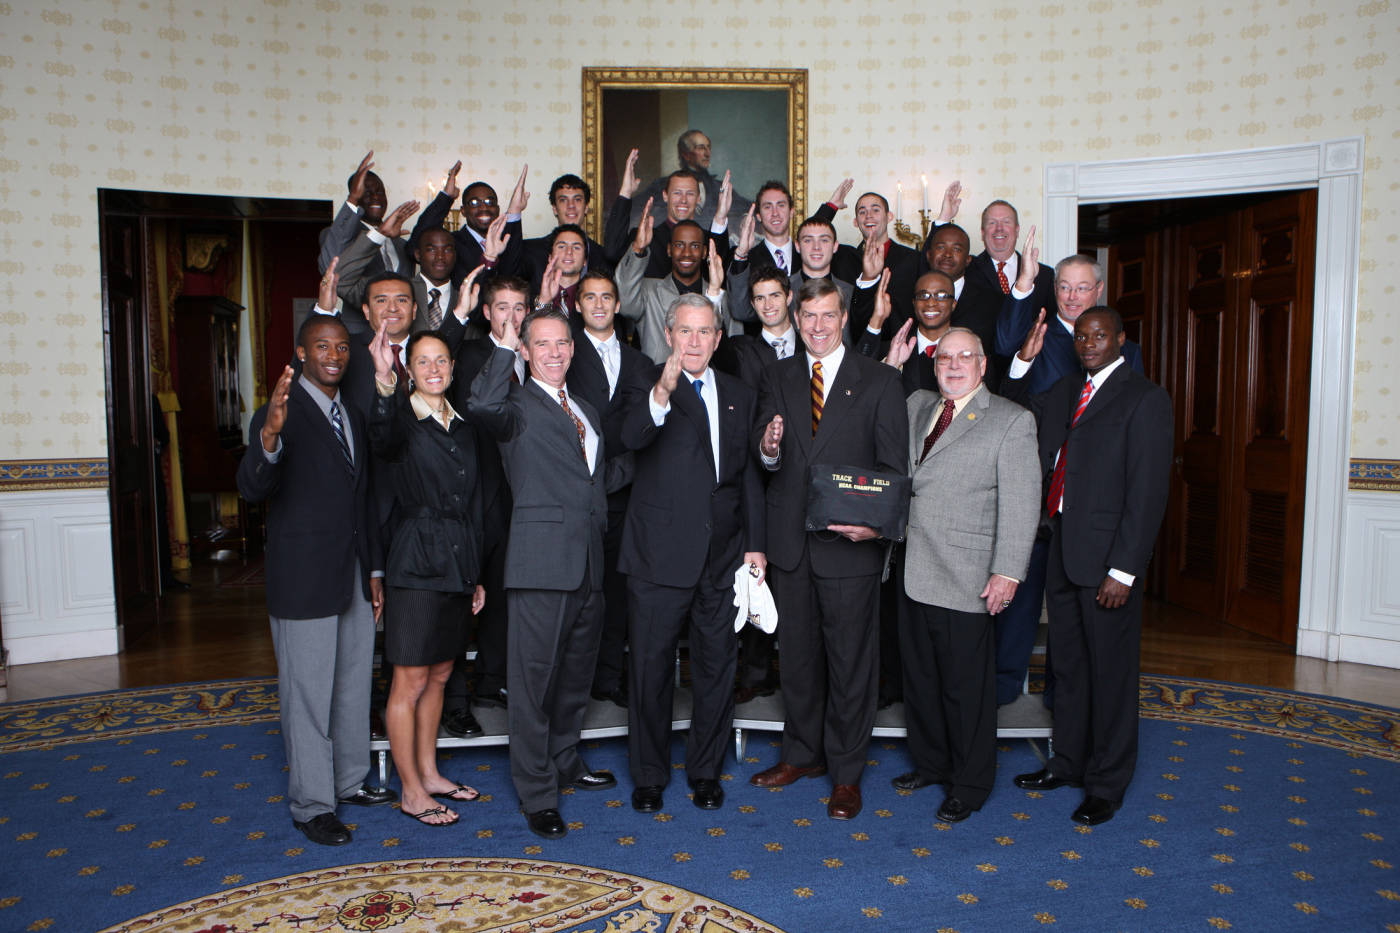 2008 Track and Field Champions trip to the White House.